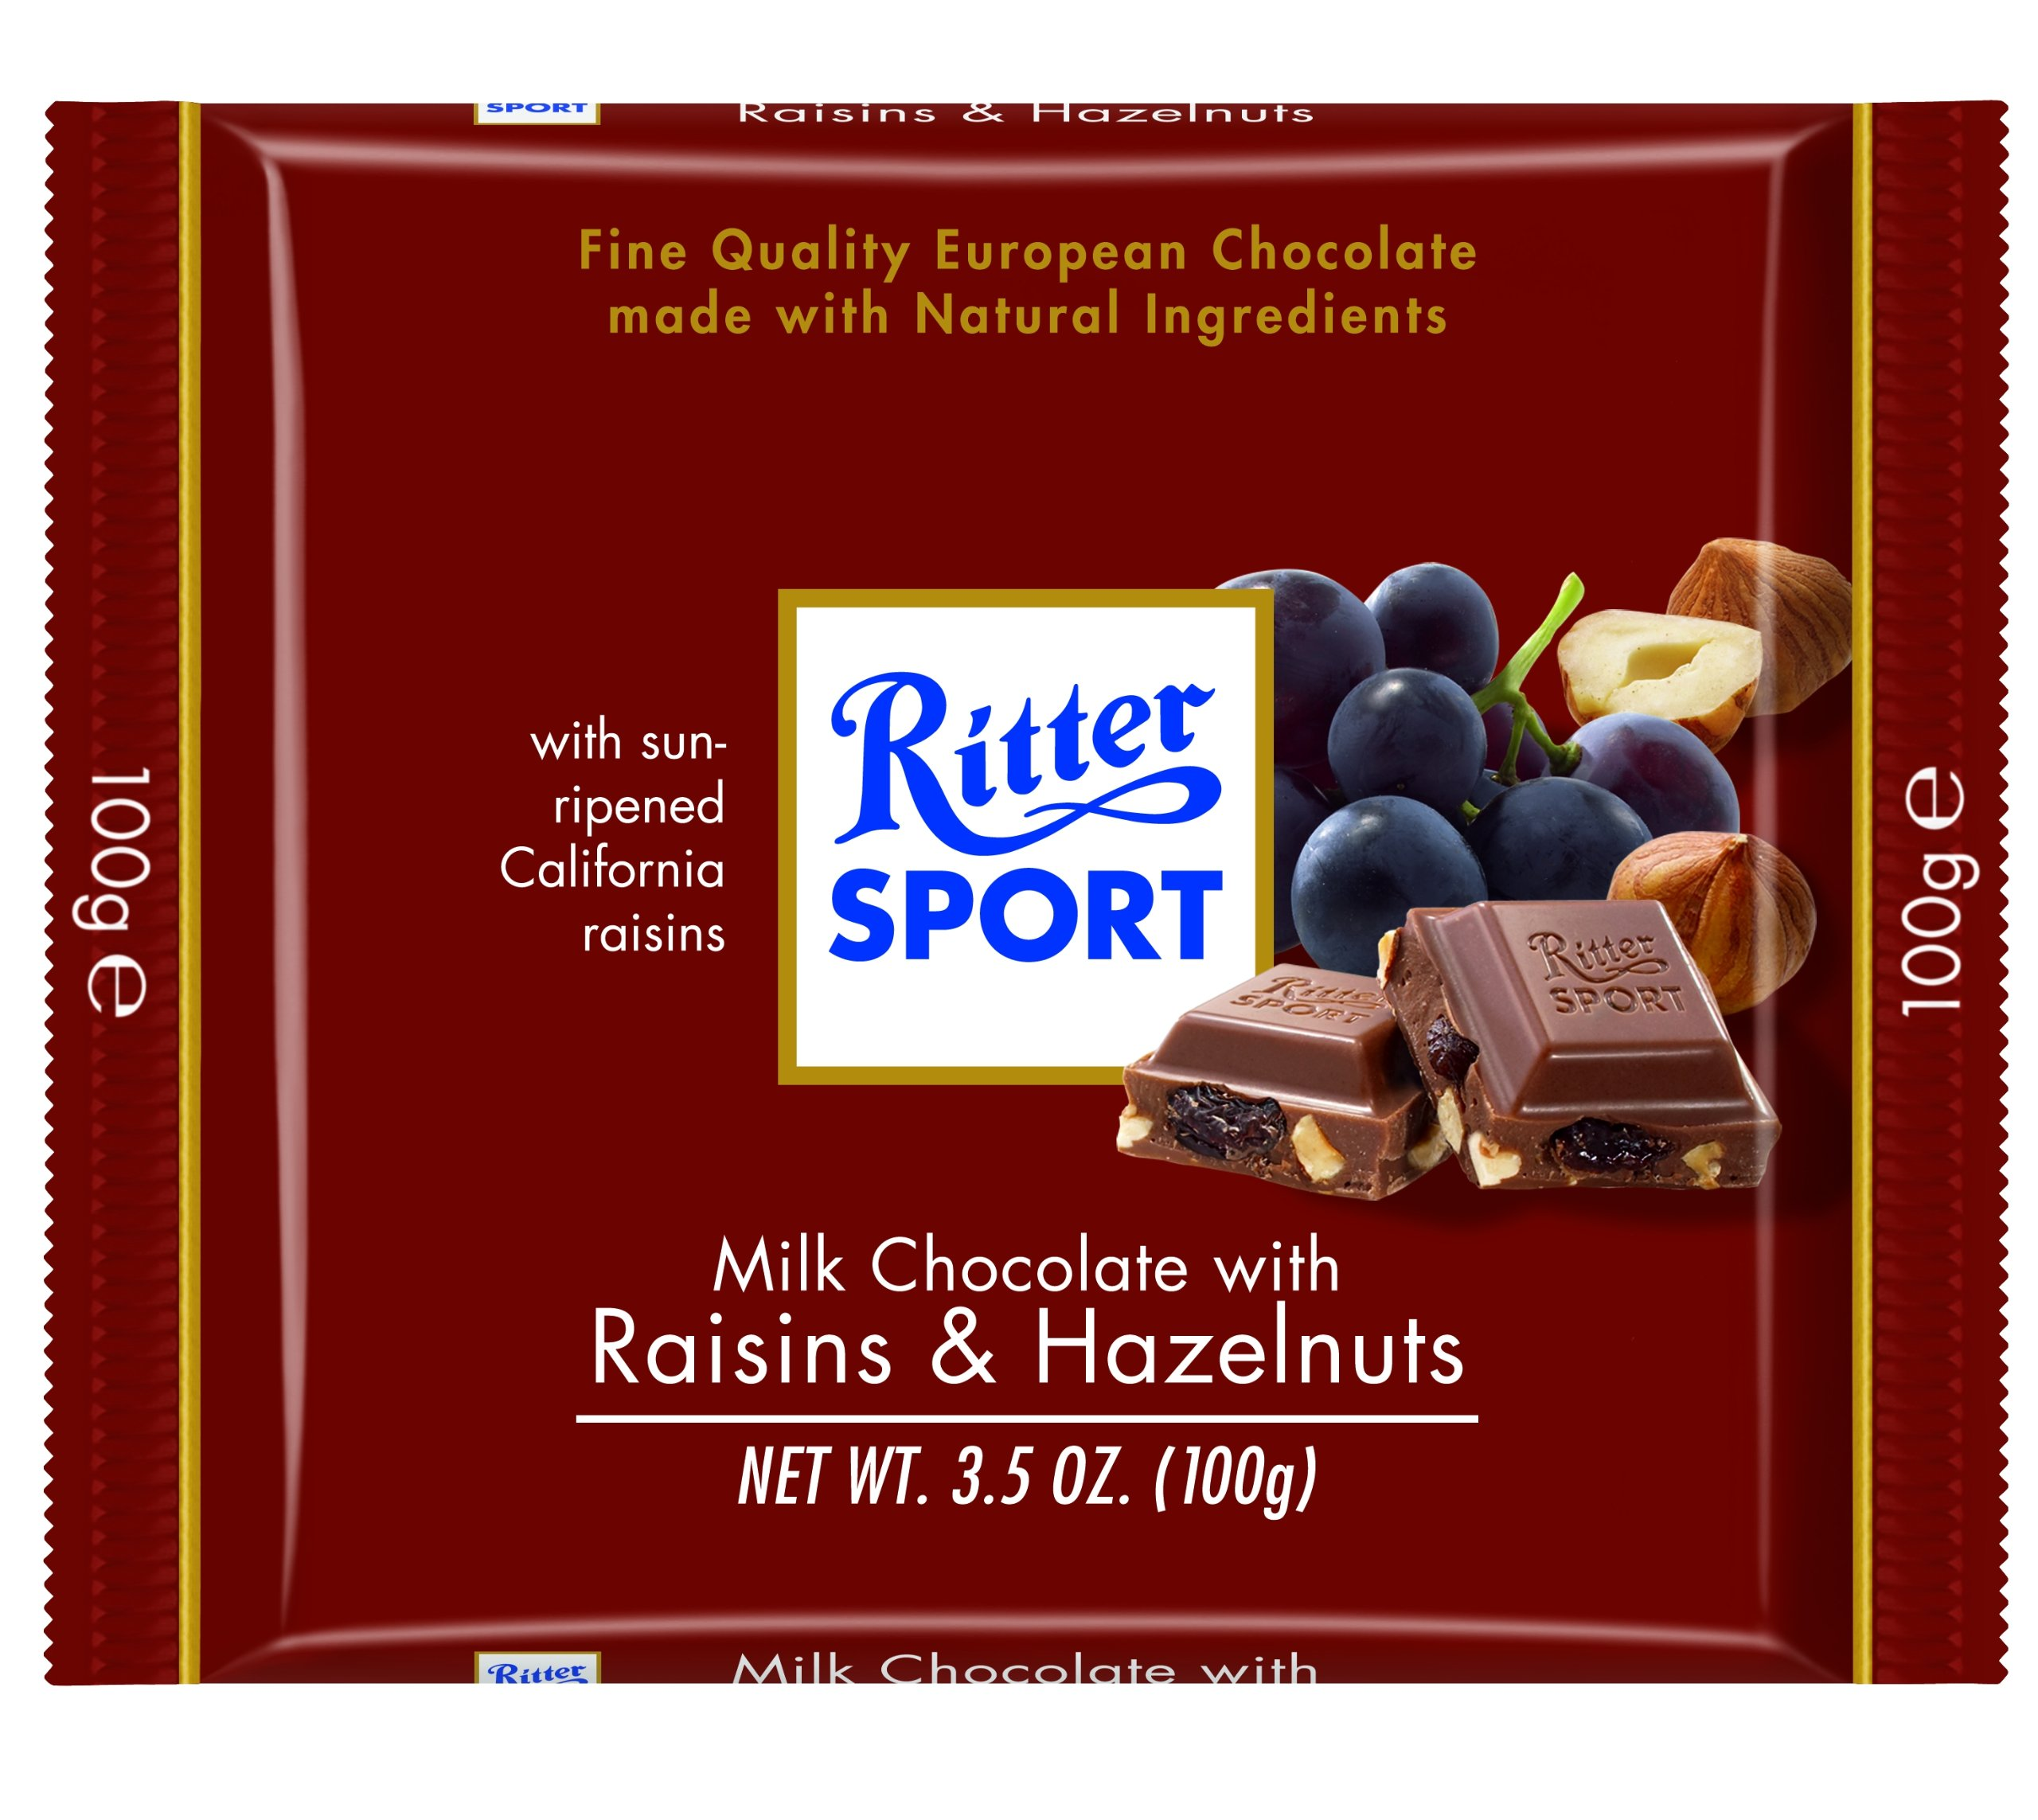 Ritter Sport, Milk Chocolate with Raisins & Hazelnuts, 3.5-Ounce Bars (Pack of 12) by Ritter Sport